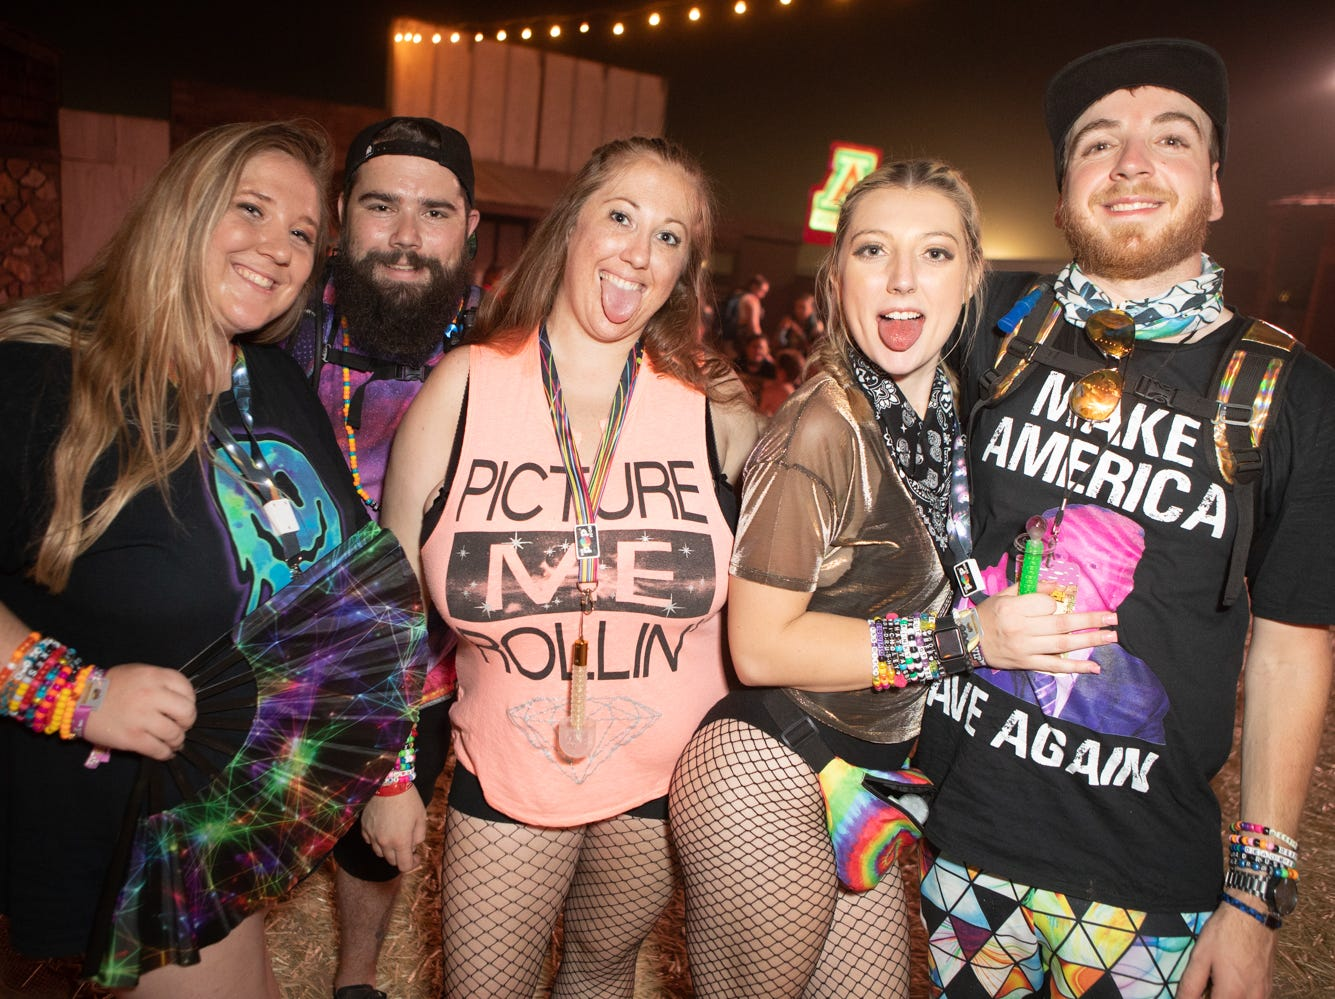 EDM music and fashion were both in full swing at the Goldrush Music Festival on Saturday, Sept. 29, 2018 at Rawhide.